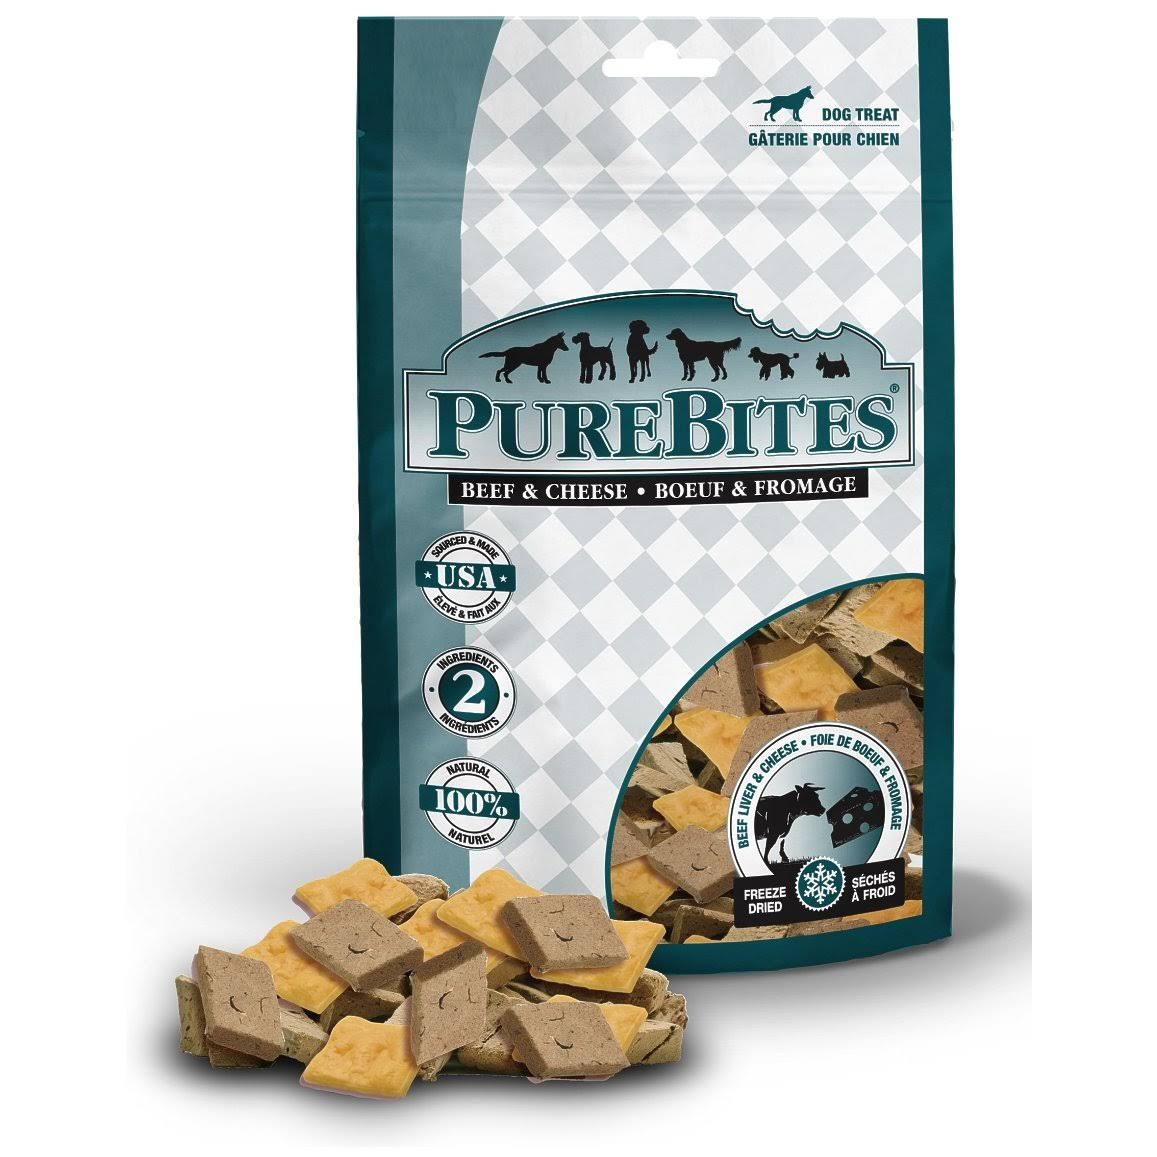 Purebites Dog Treats - Beef & Cheese